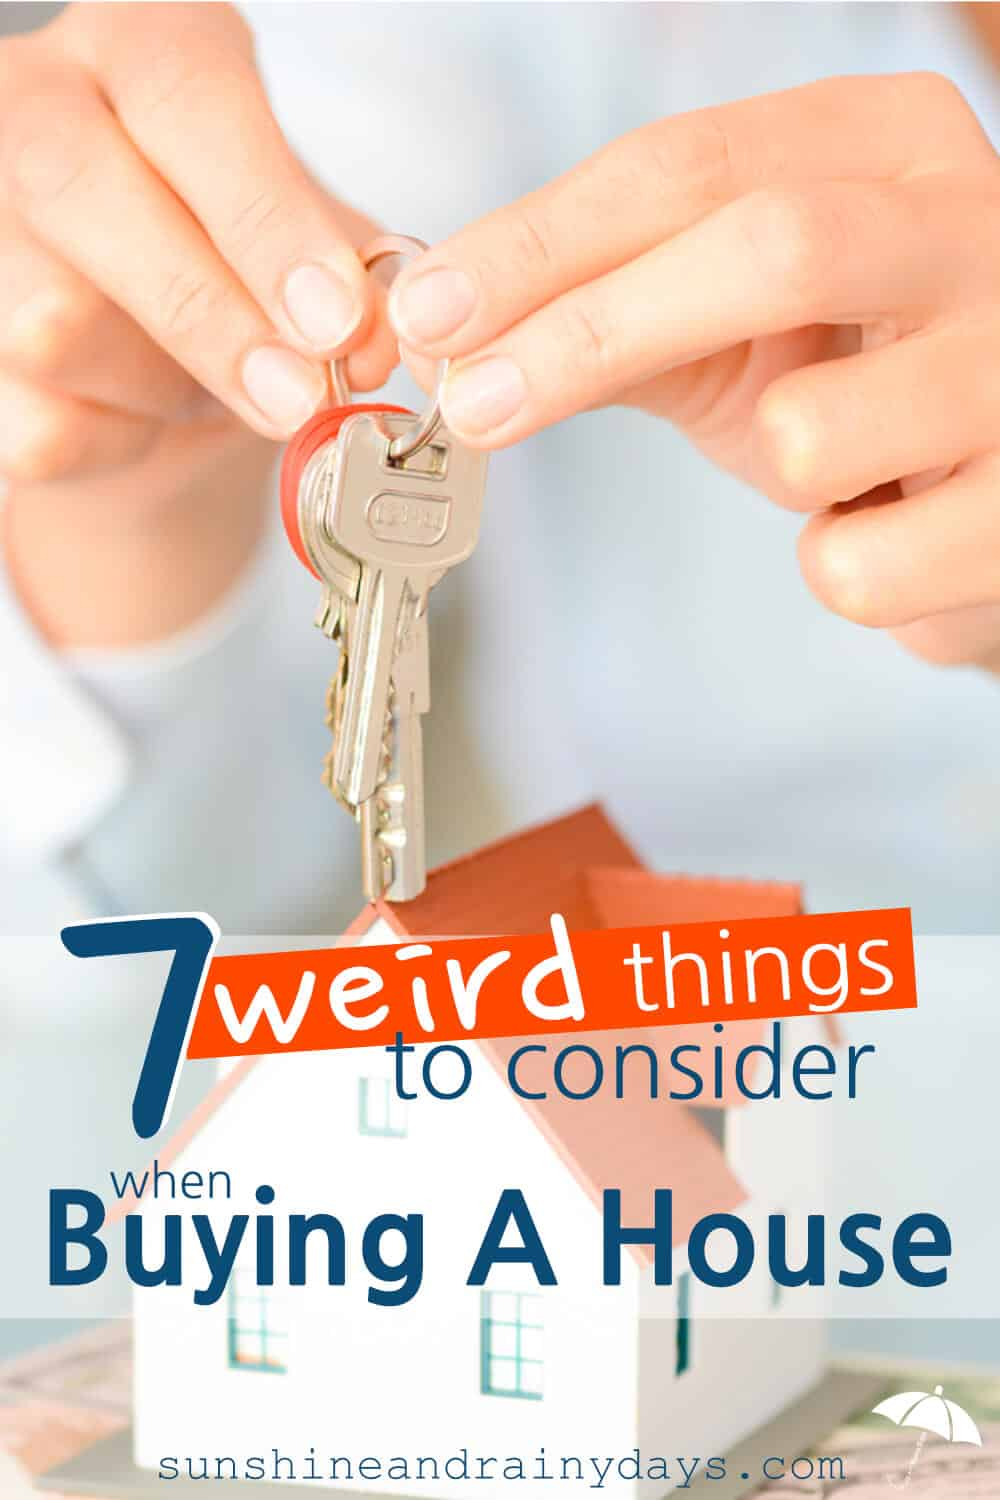 7 weird things to consider when buying a house sunshine 5 things to consider when buying a house wma property